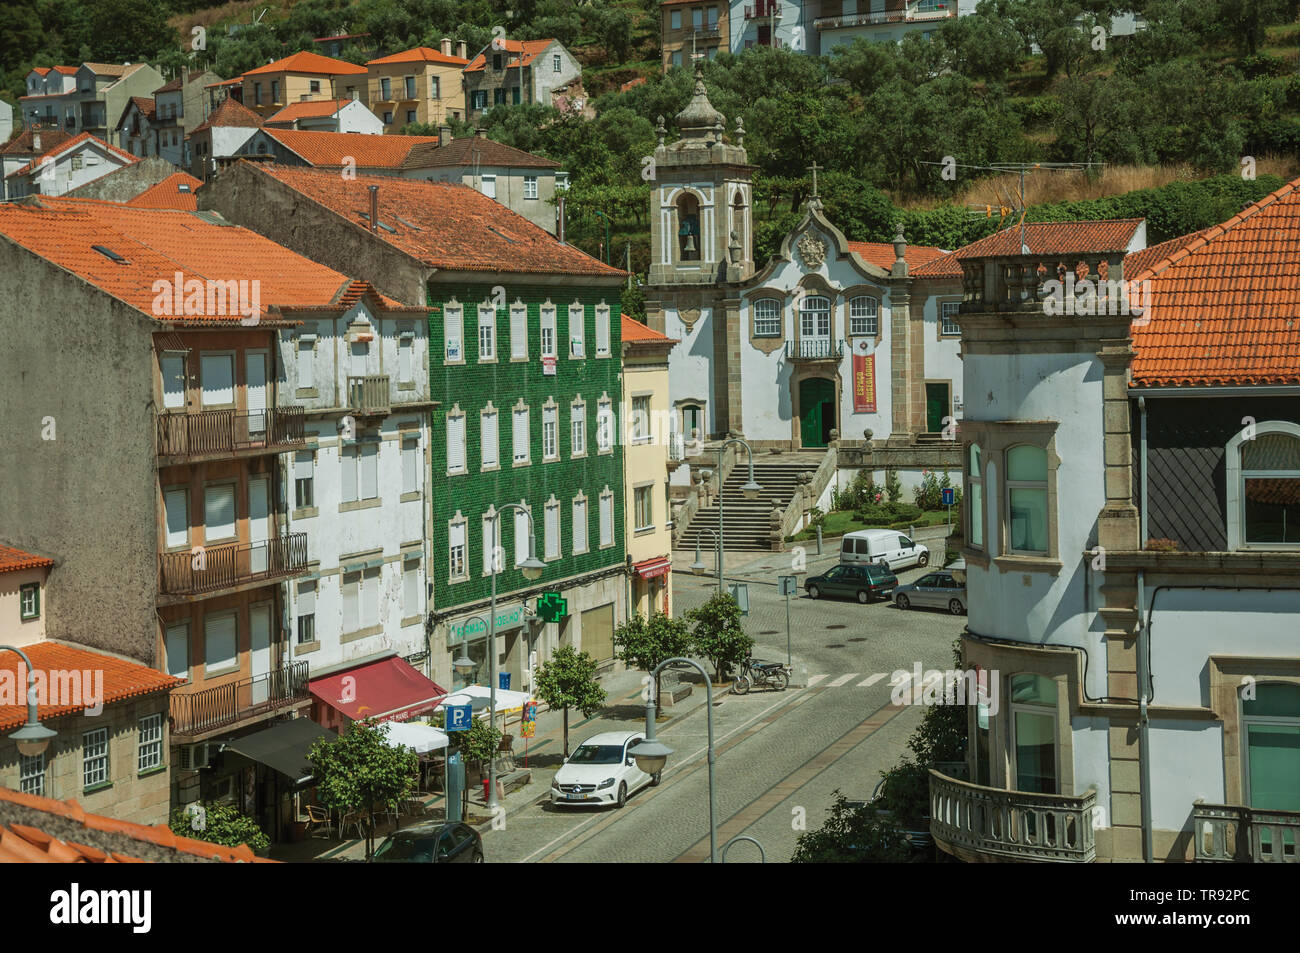 Street with colorful buildings and baroque church in a hilly landscape at Seia. A nice village of Portugal also known for its delicious cheese. - Stock Image